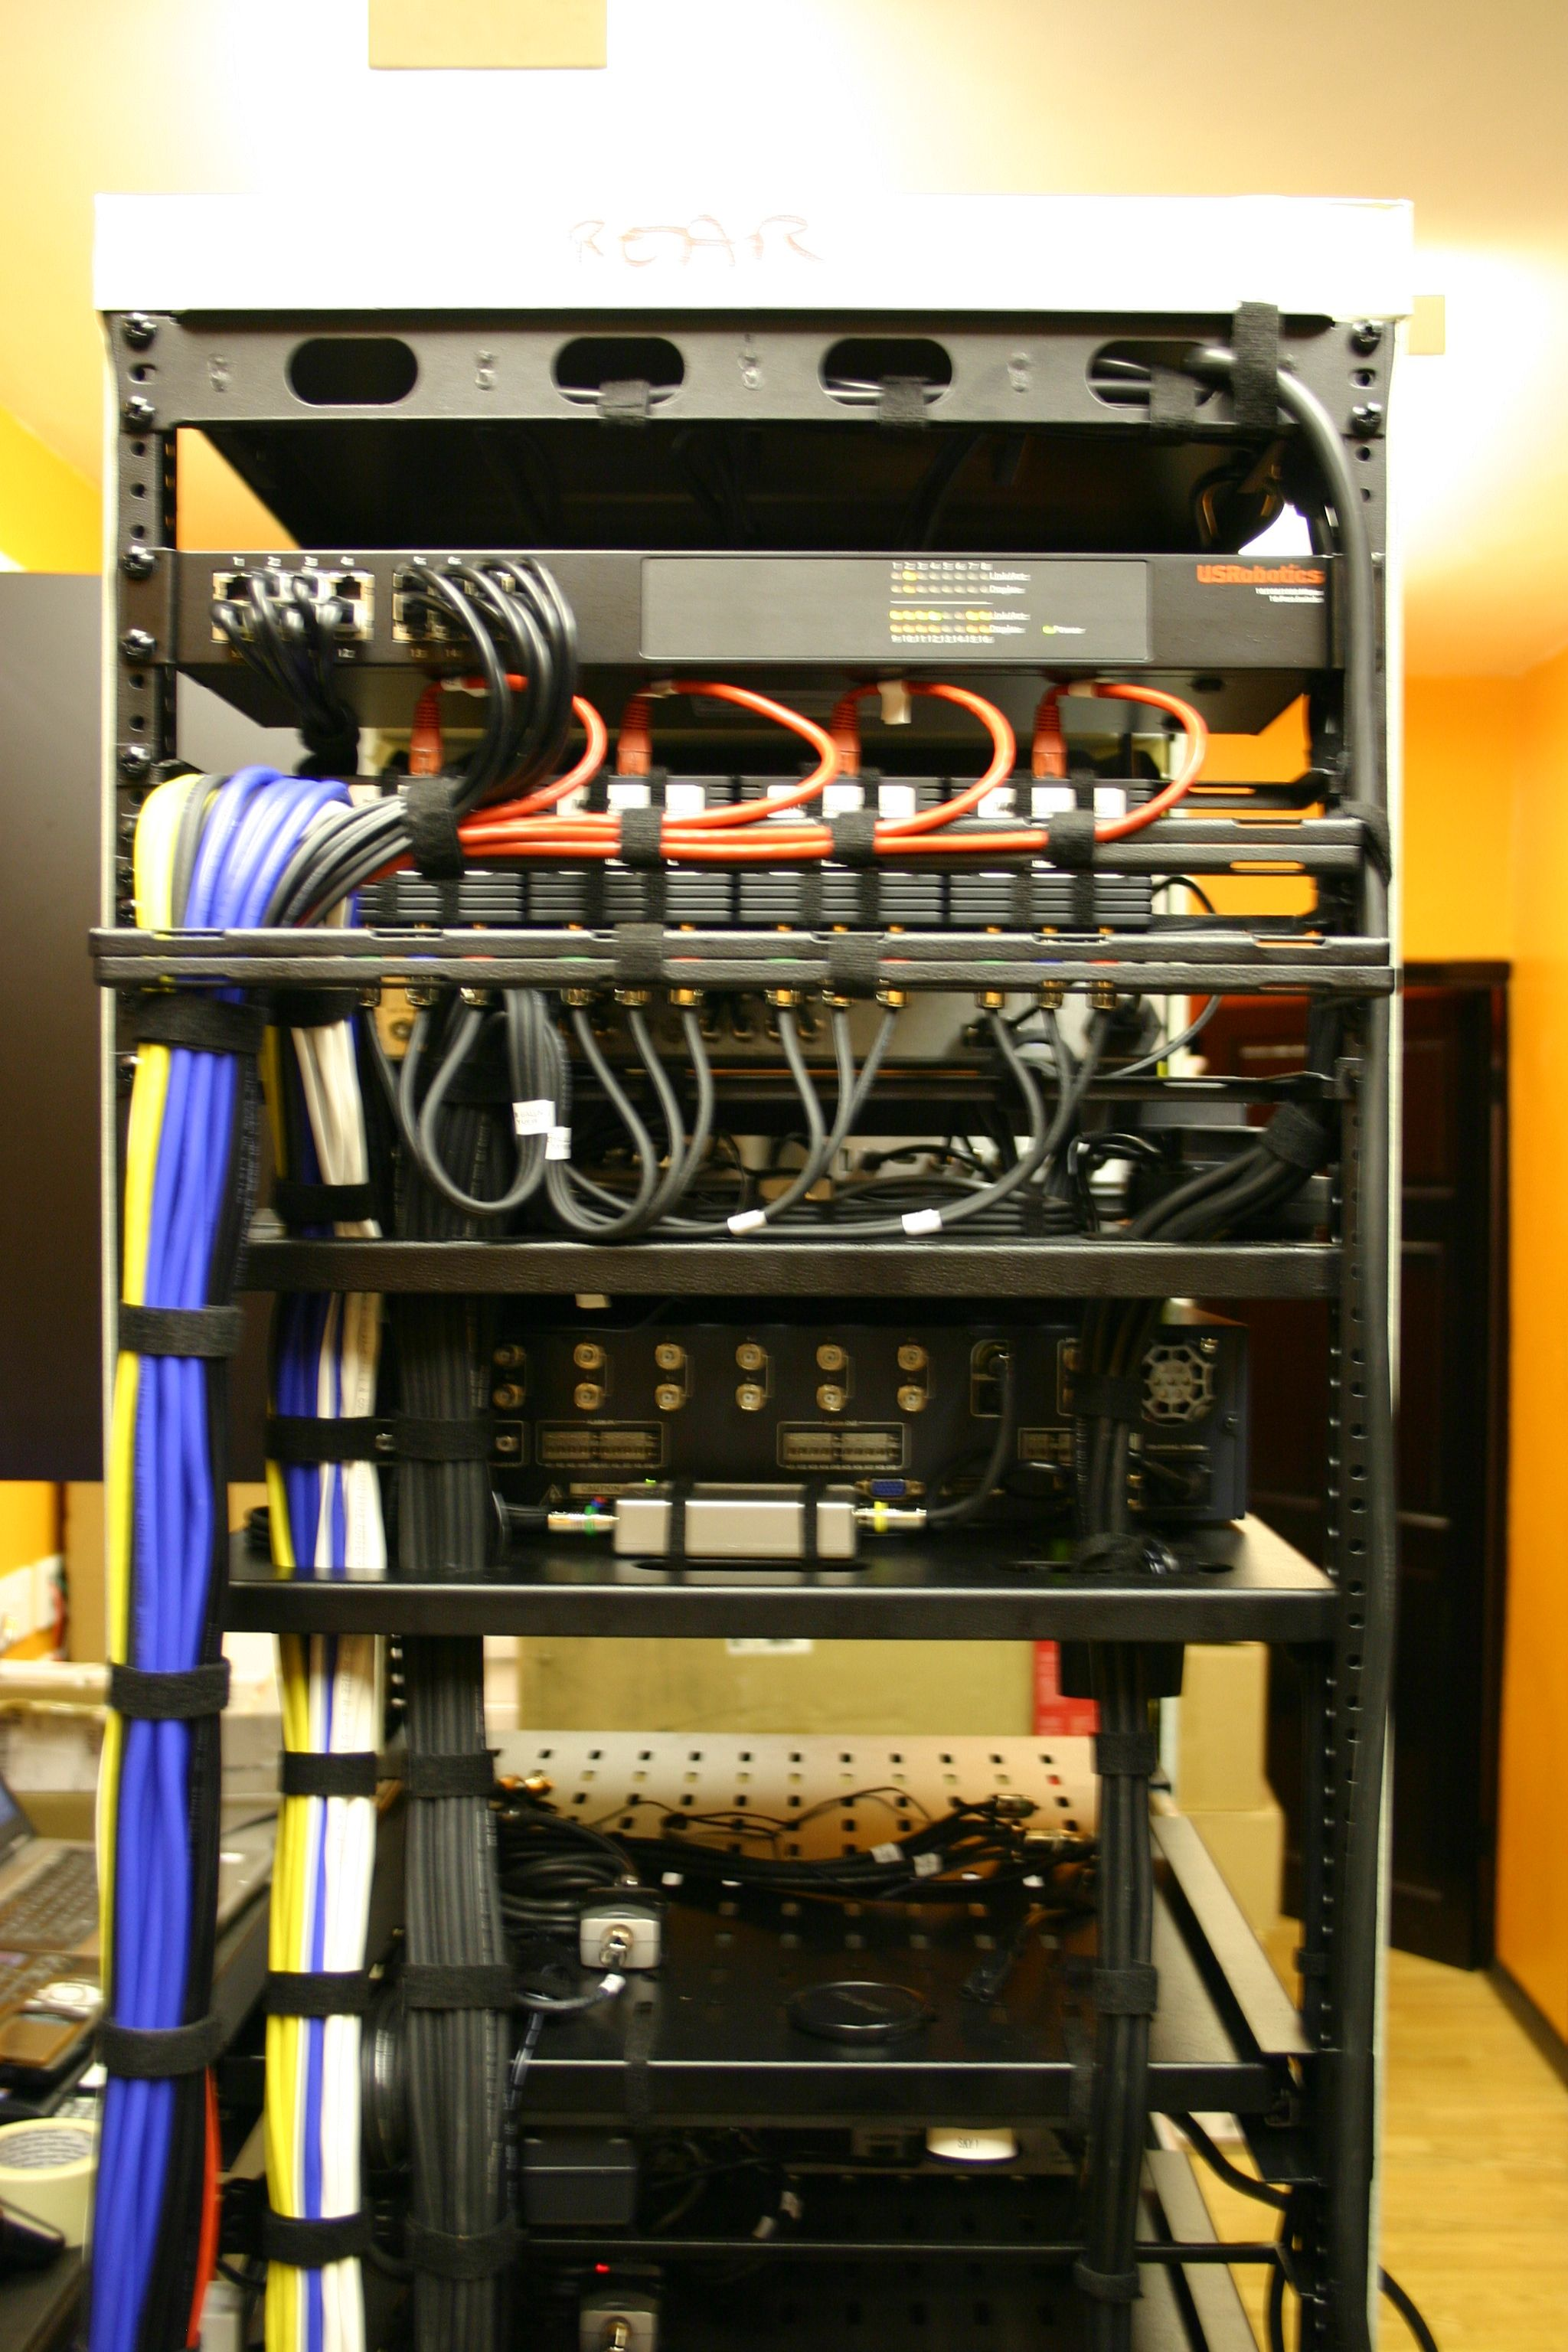 Home Av Wiring - Wiring Diagrams Home Wiring Management on